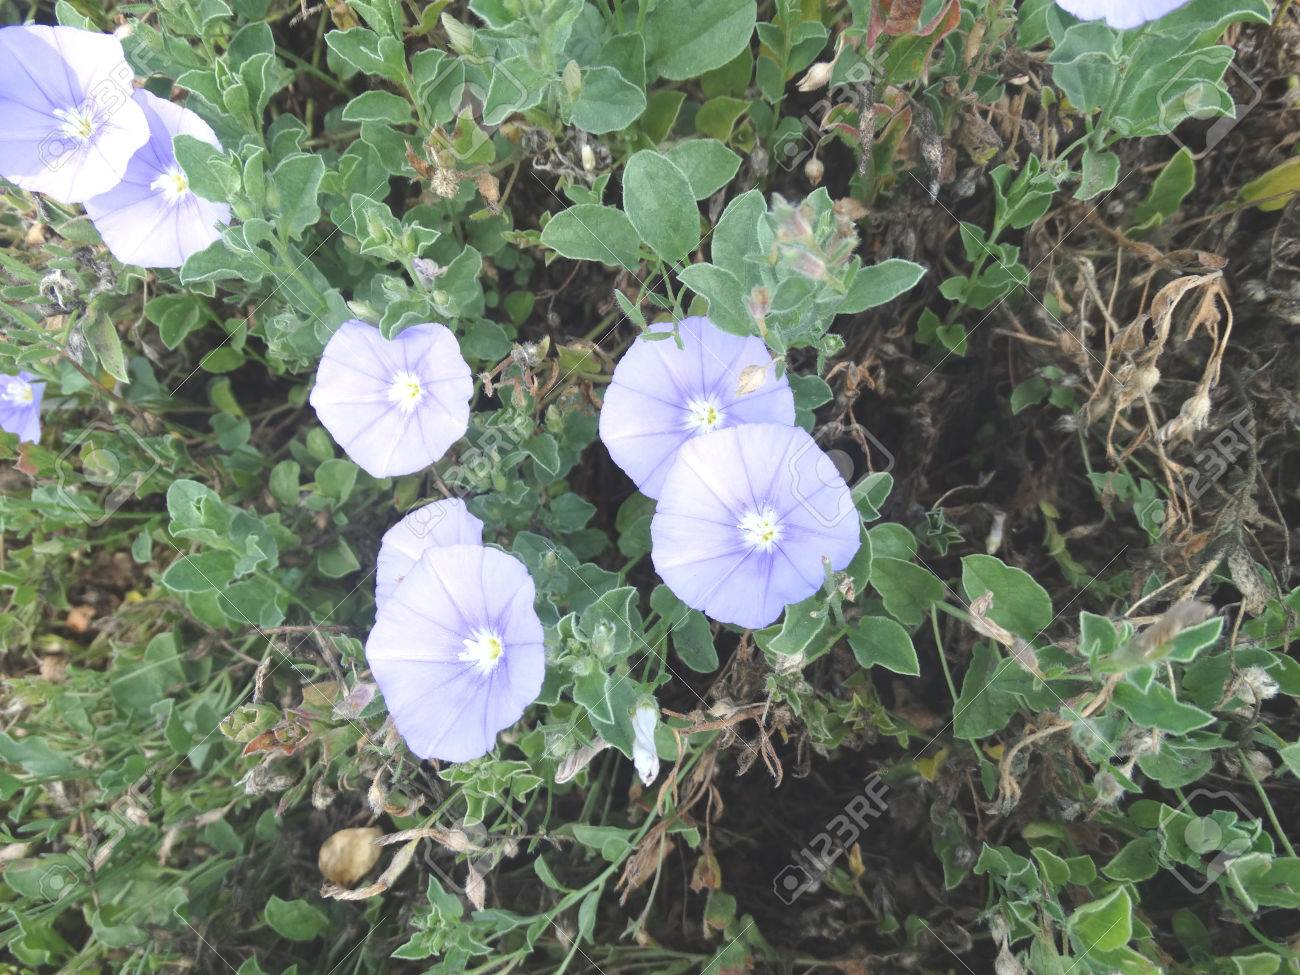 Ground morning glory convolvulus mauritanicus perennial low ground morning glory convolvulus mauritanicus perennial low growing ground cover plant with trailing branches izmirmasajfo